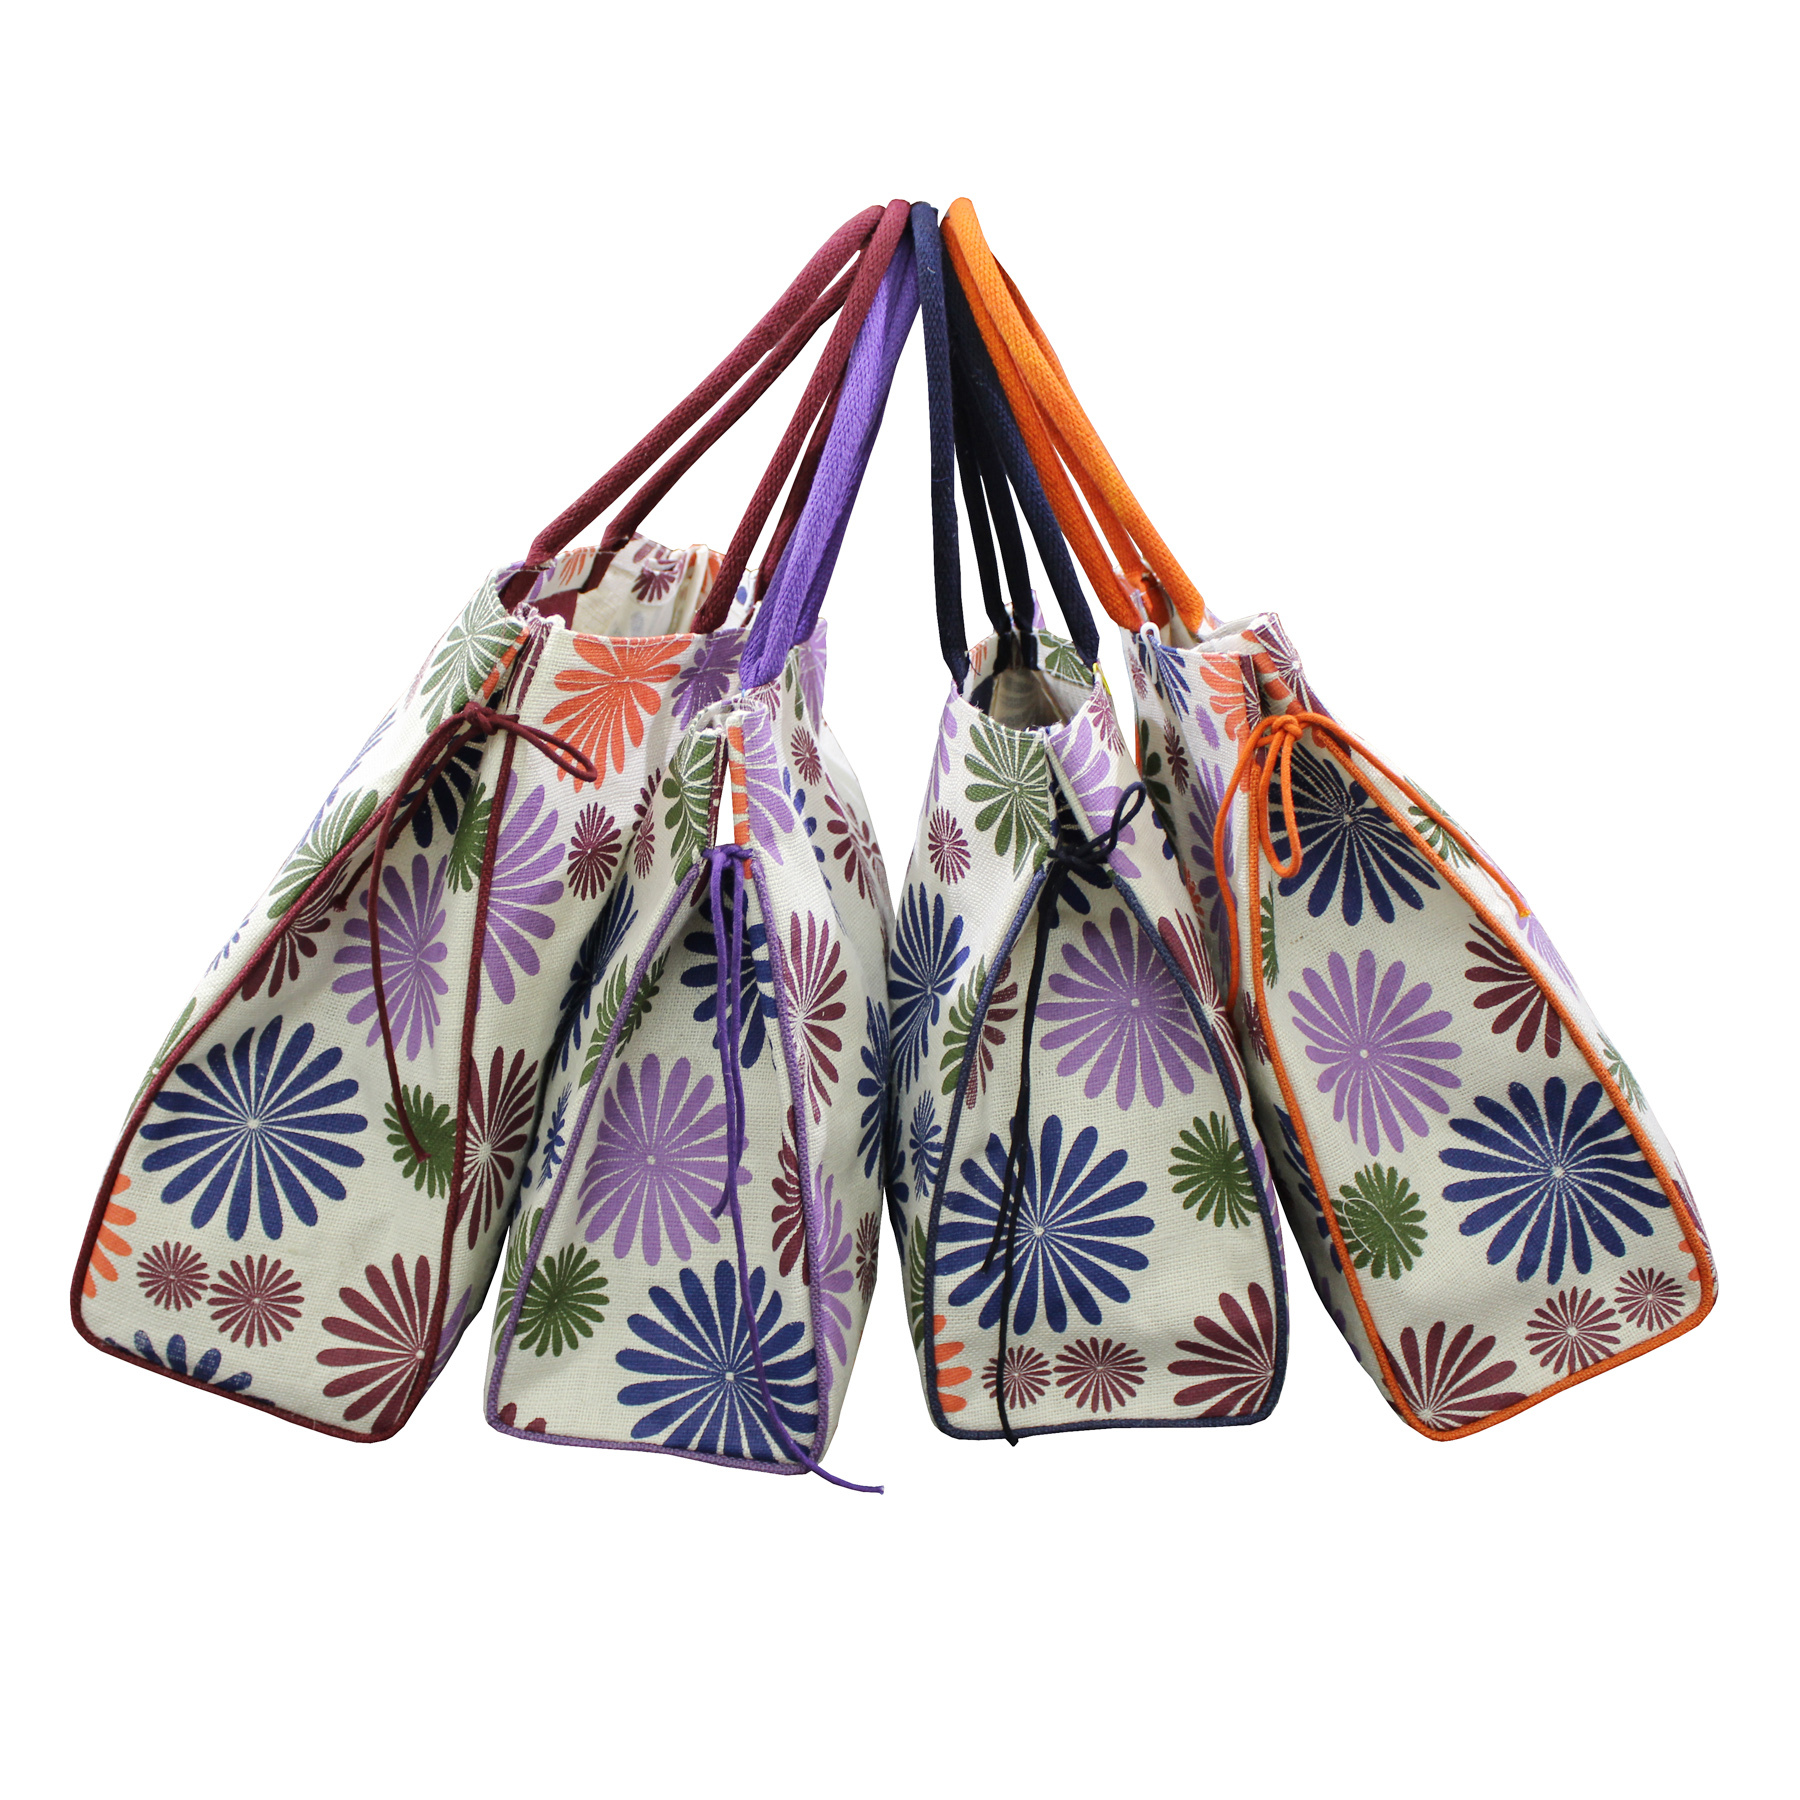 PP Laminated Jute Tote Bag With Padded Rope Handle & Inside Hanging Zip Pocket